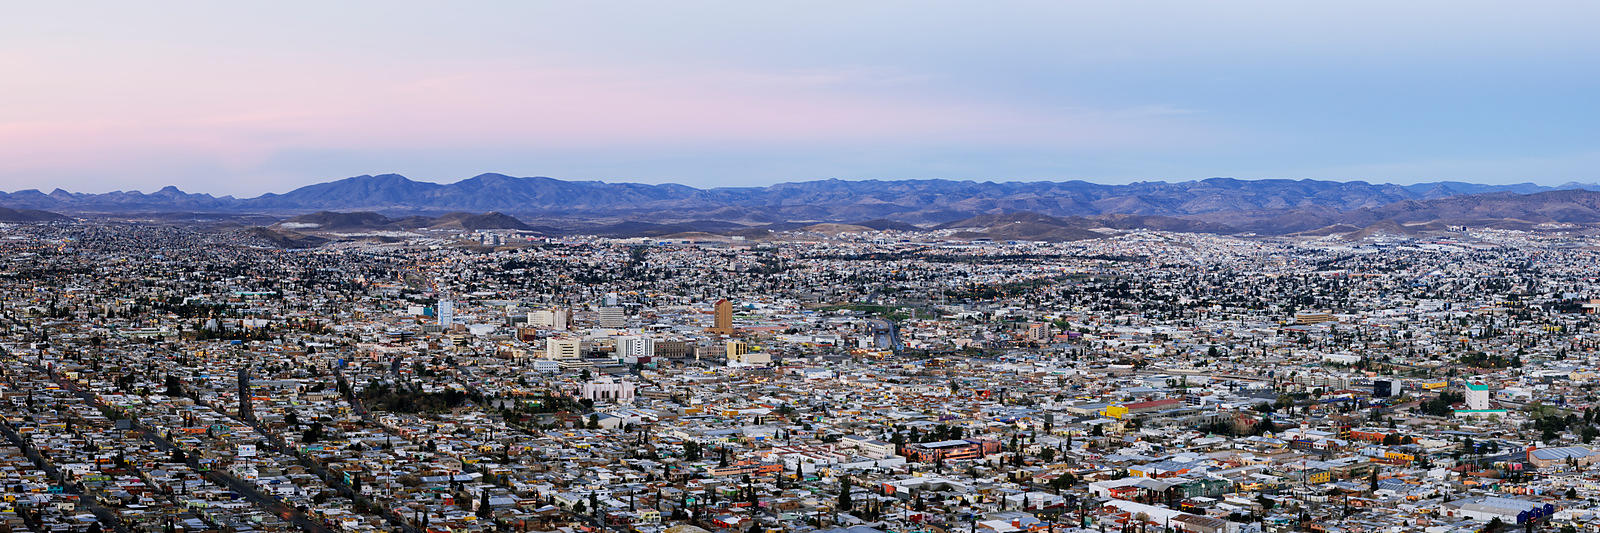 Skyline of Chihuahua from Cerro Coronel